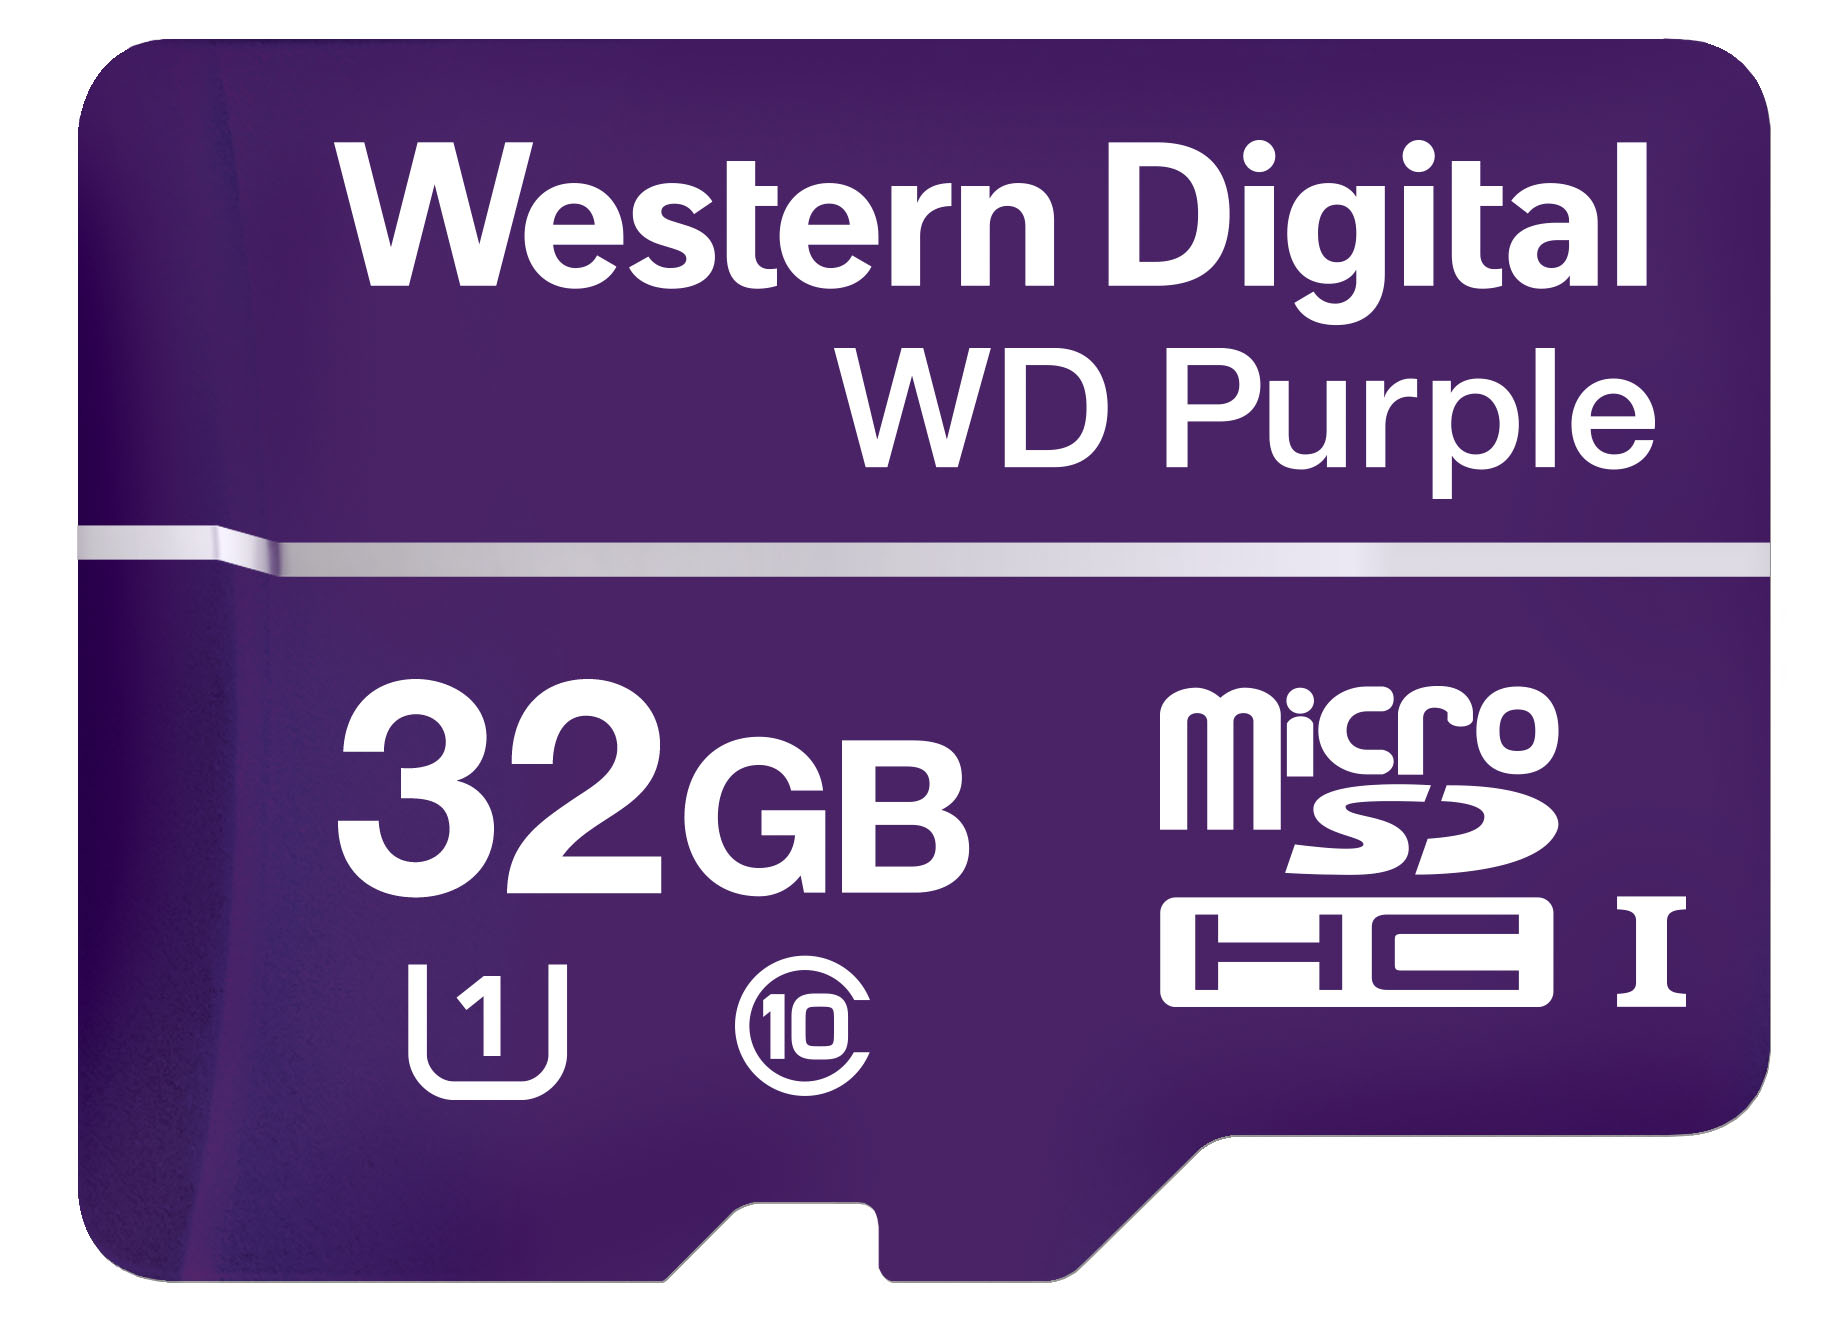 WESTERN DIGITAL PURPLE 32GB MICROSDHC CLASS 10 MEMORY CARD